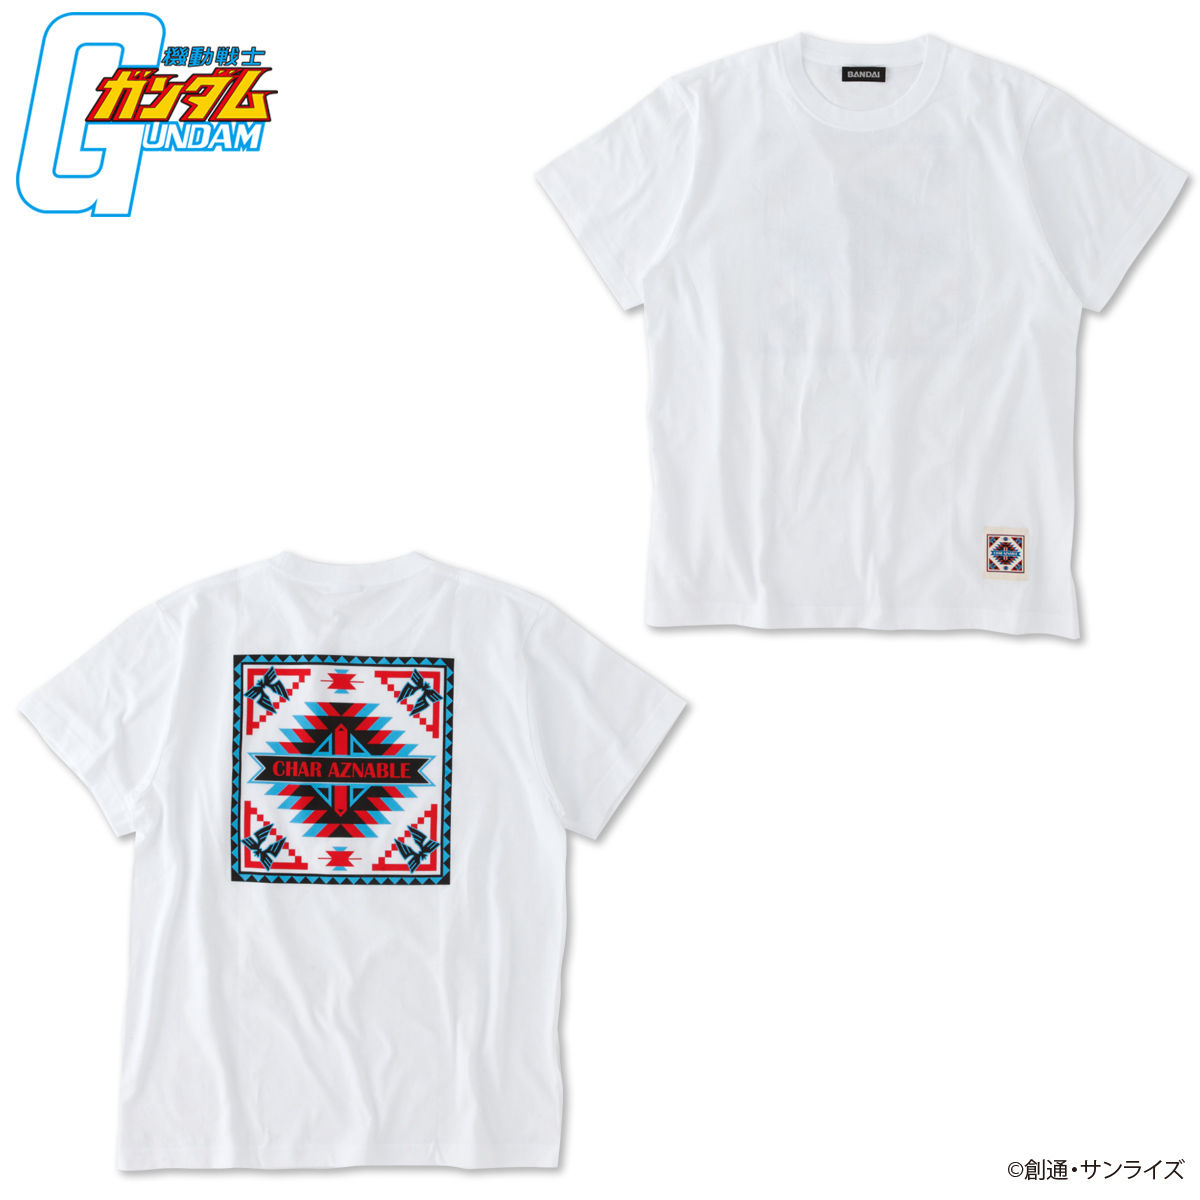 South-Western Style T-shirt—Mobile Suit Gundam